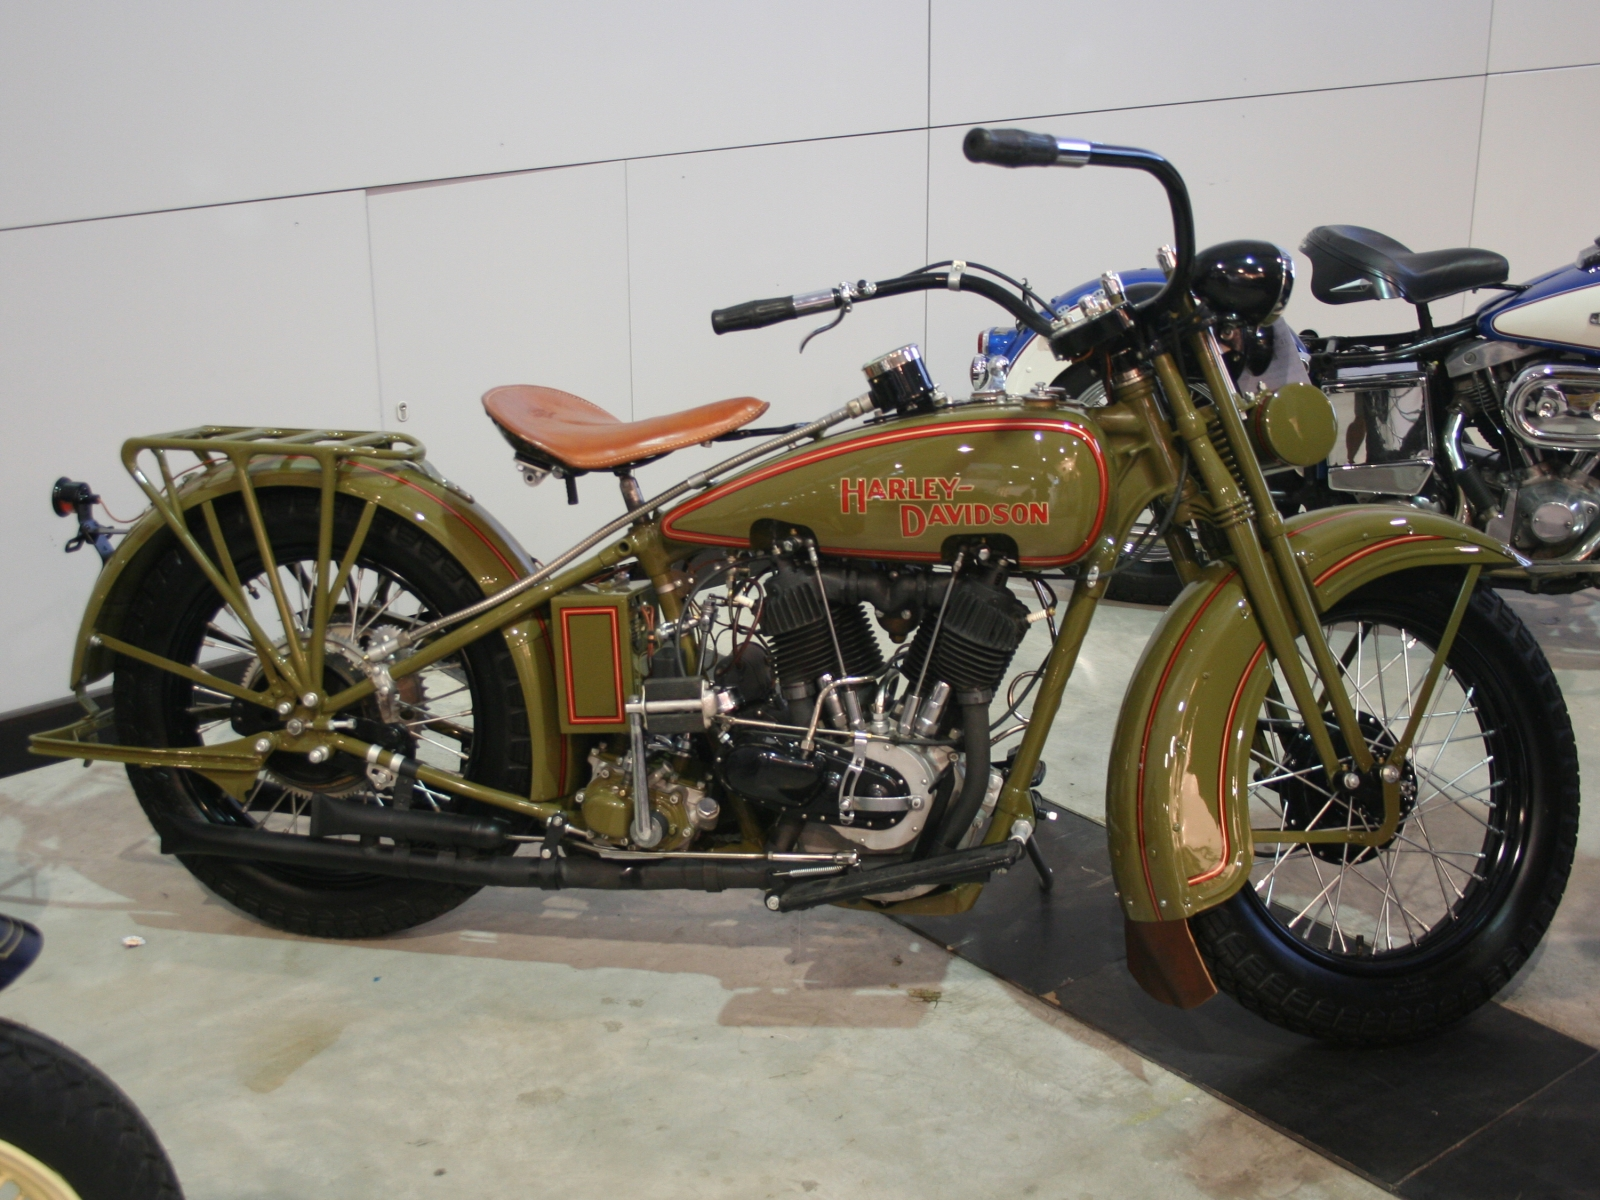 Harley-davidson jd photo - 2